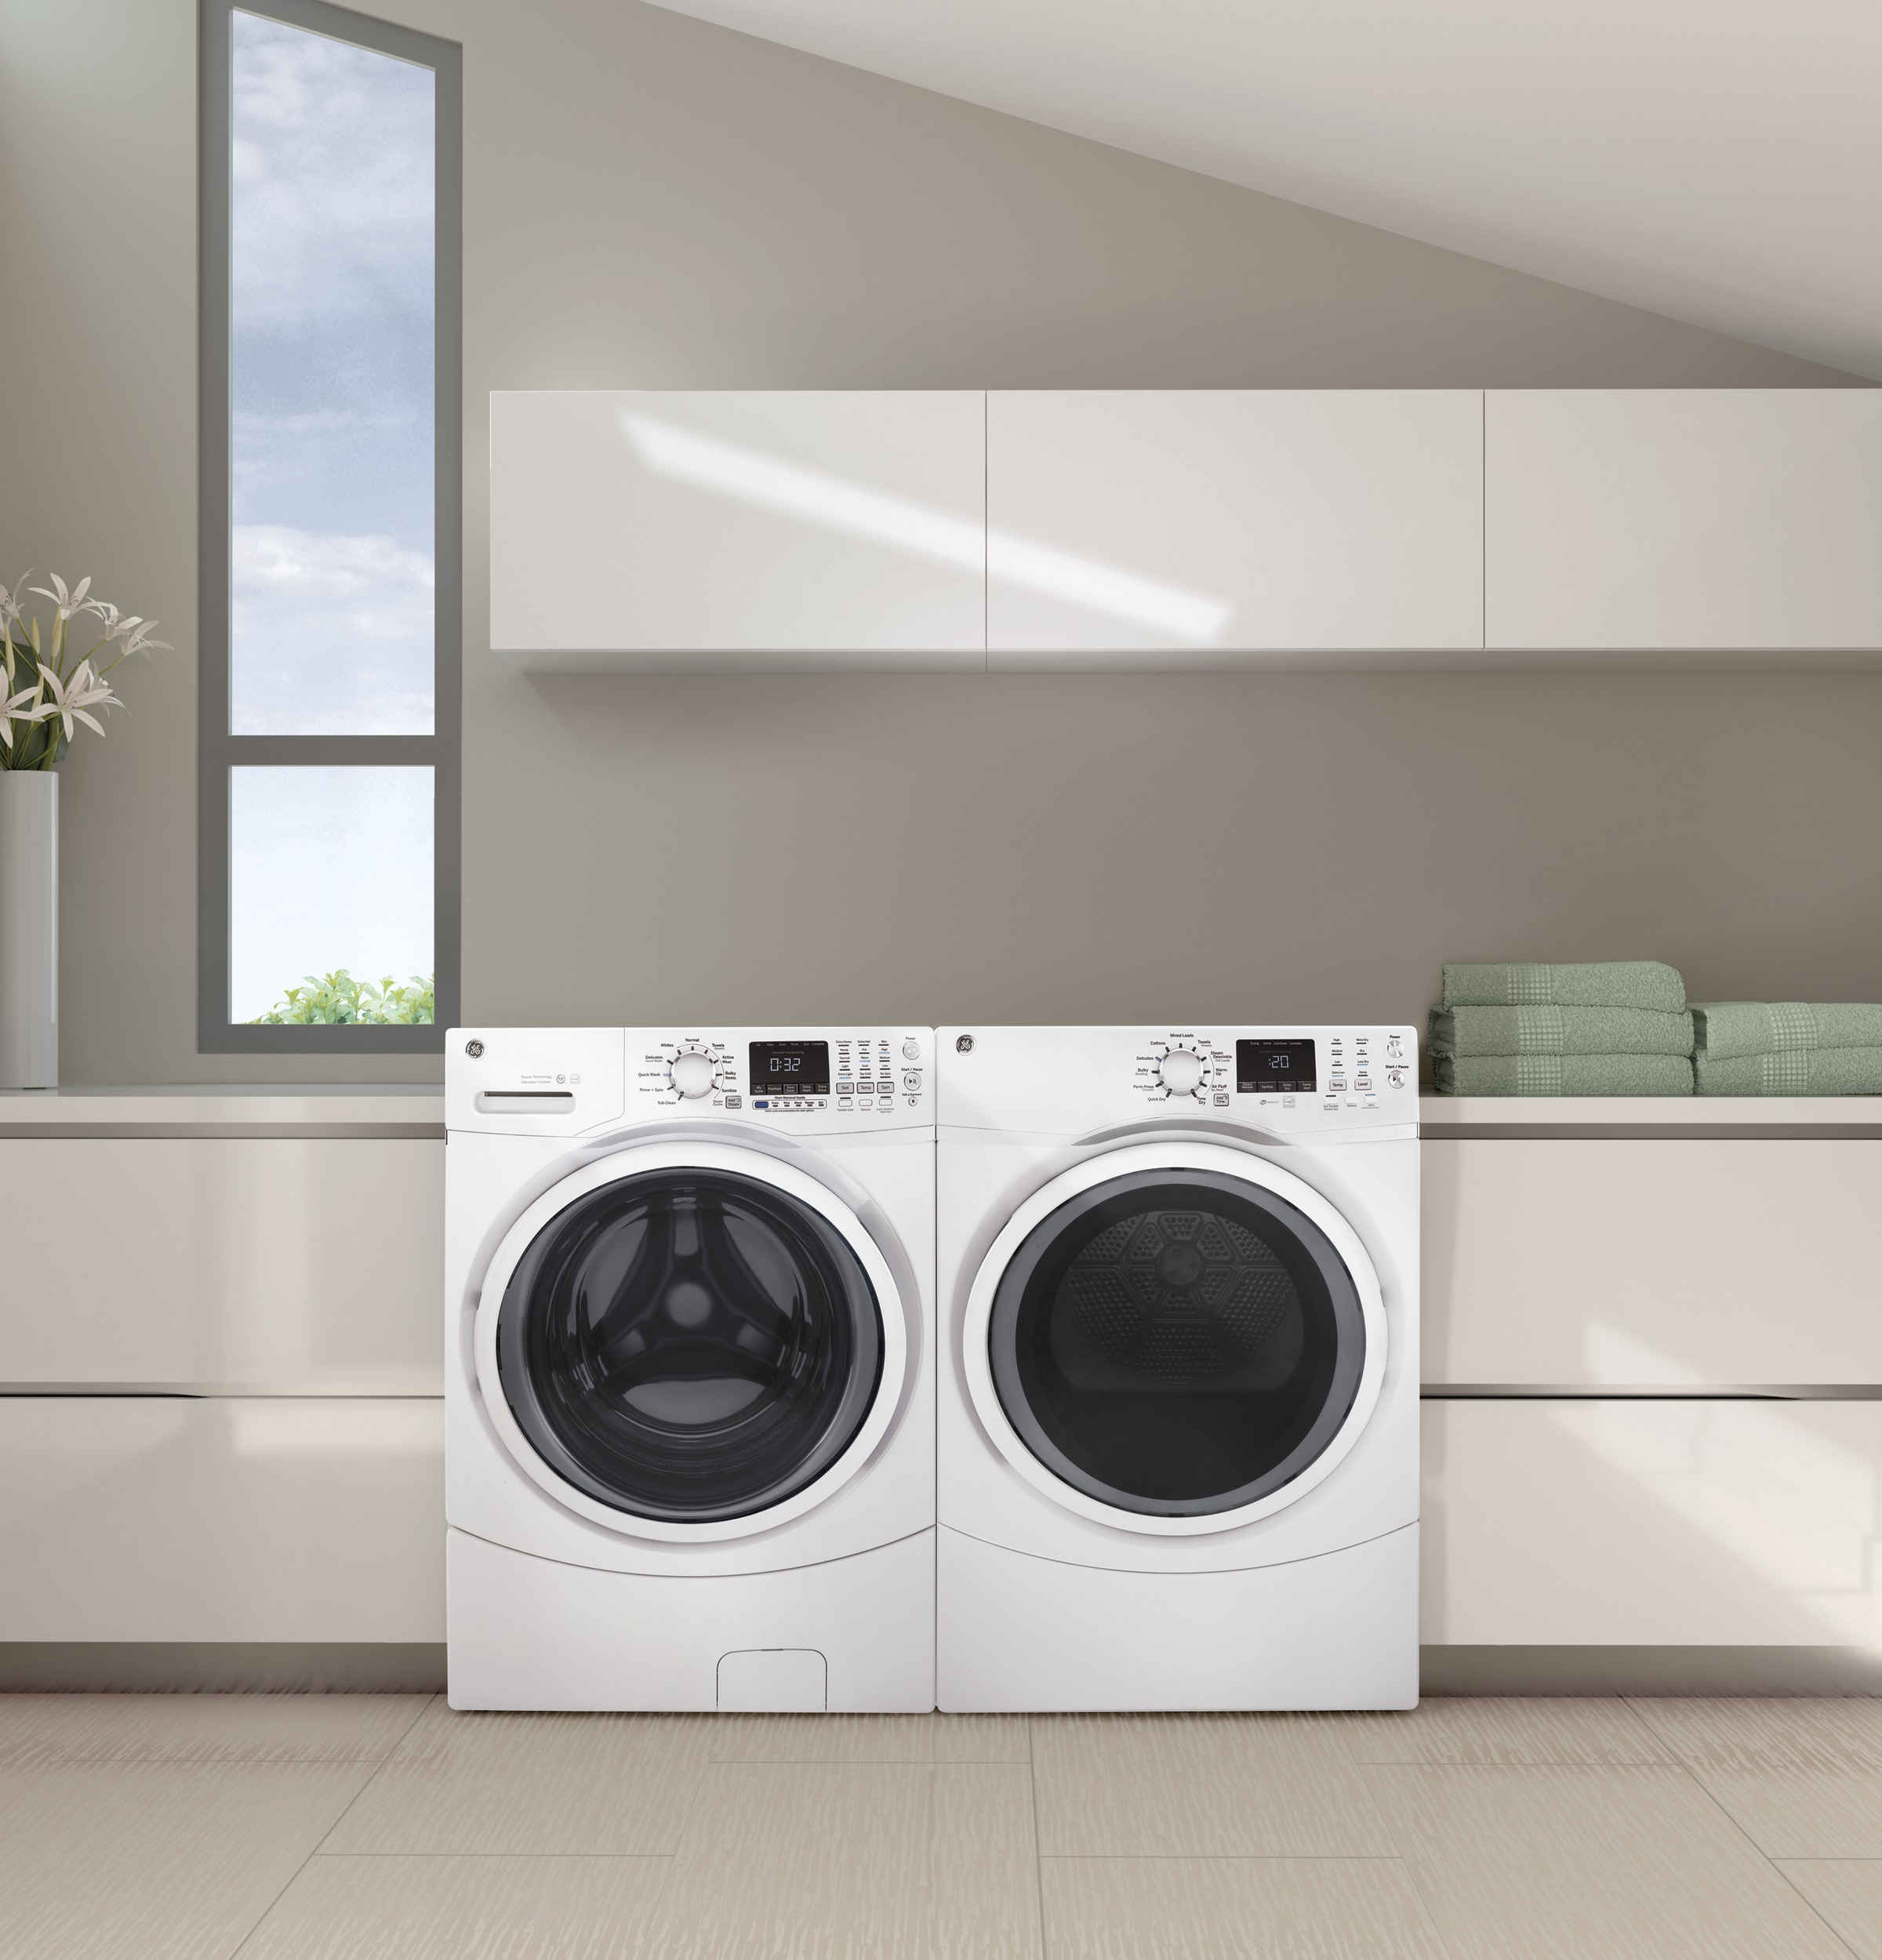 Model: GFD45ESSMWW | GE® 7.5 cu. ft. Capacity Front Load Electric Dryer with Steam